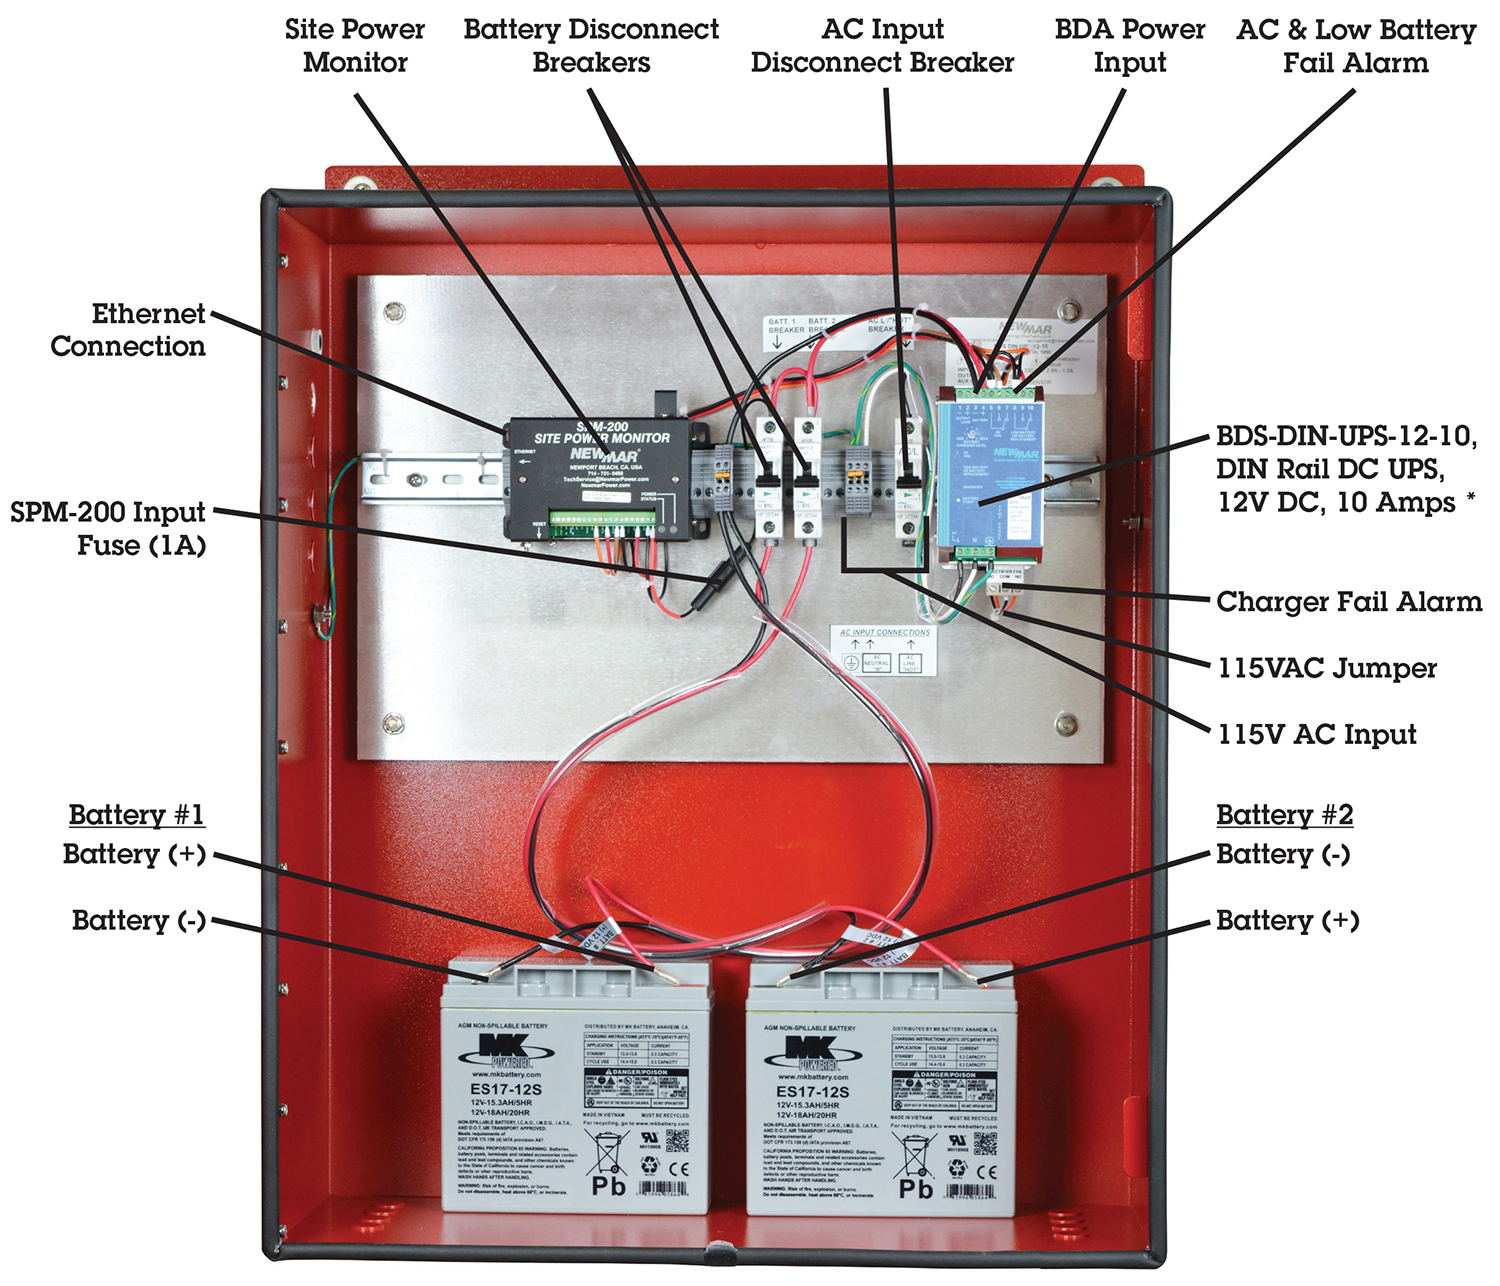 Public Safety Keep Bda Das In Building Networks Ready For Shr 1 Series Wiring Diagram Hot Rails Power Pe Enclosures Nfpa 1221 Standards 12 Vdc